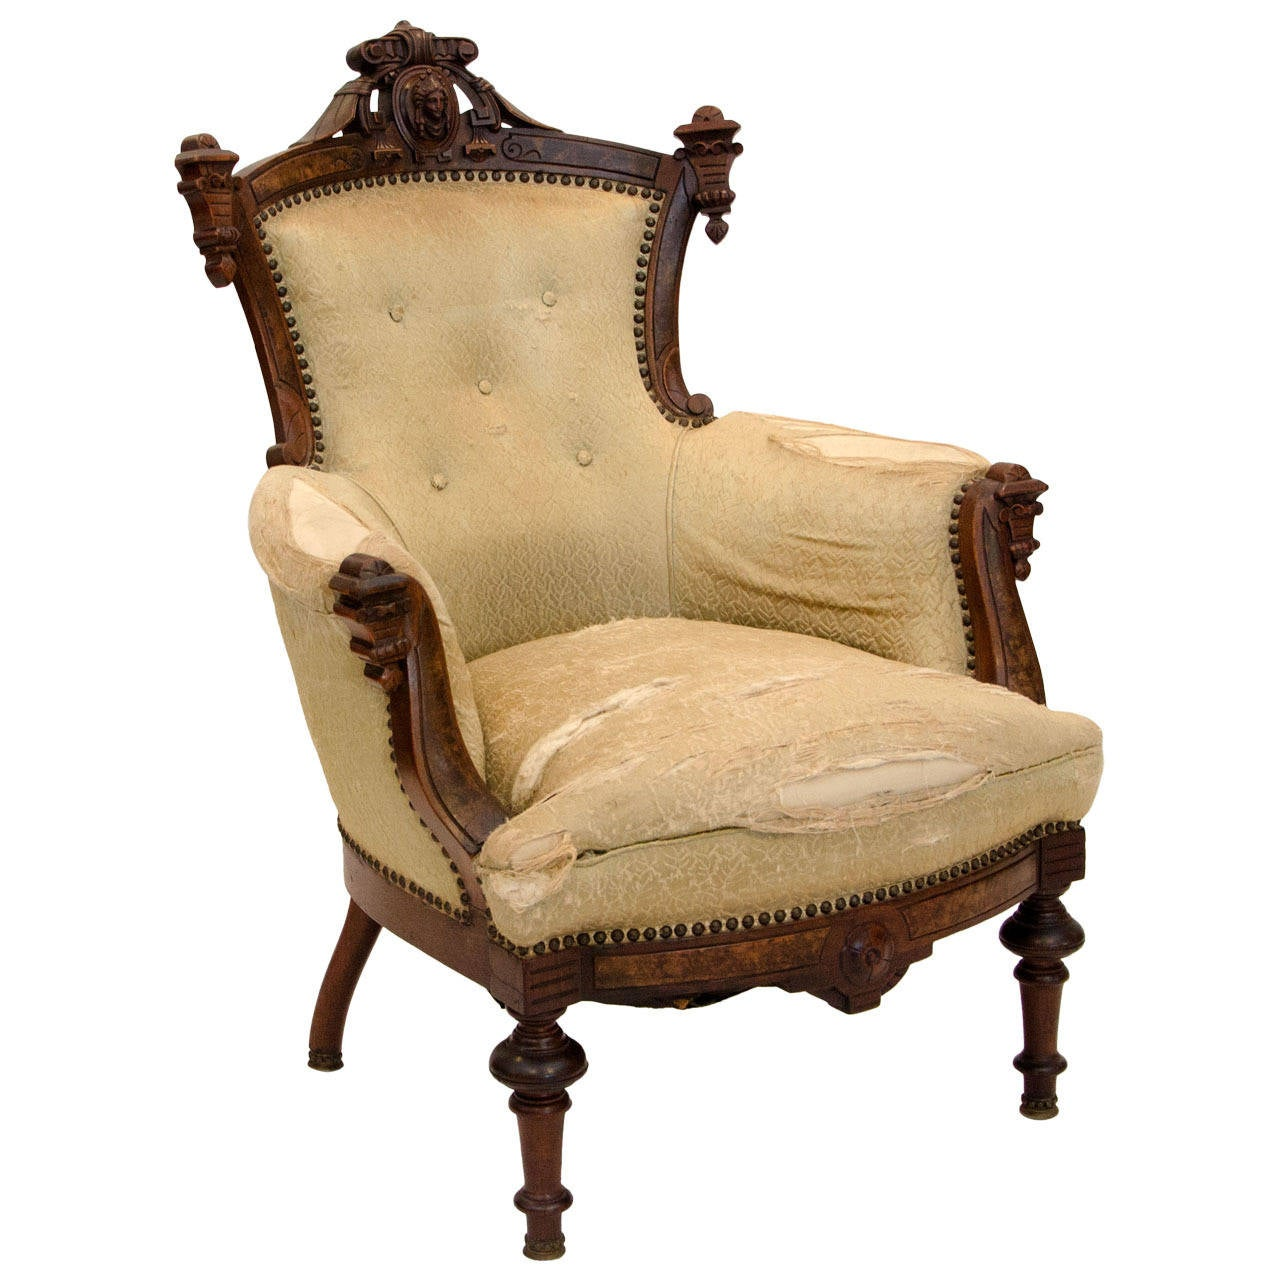 American Walnut Victorian Parlor Chair For Sale - American Walnut Victorian Parlor Chair At 1stdibs